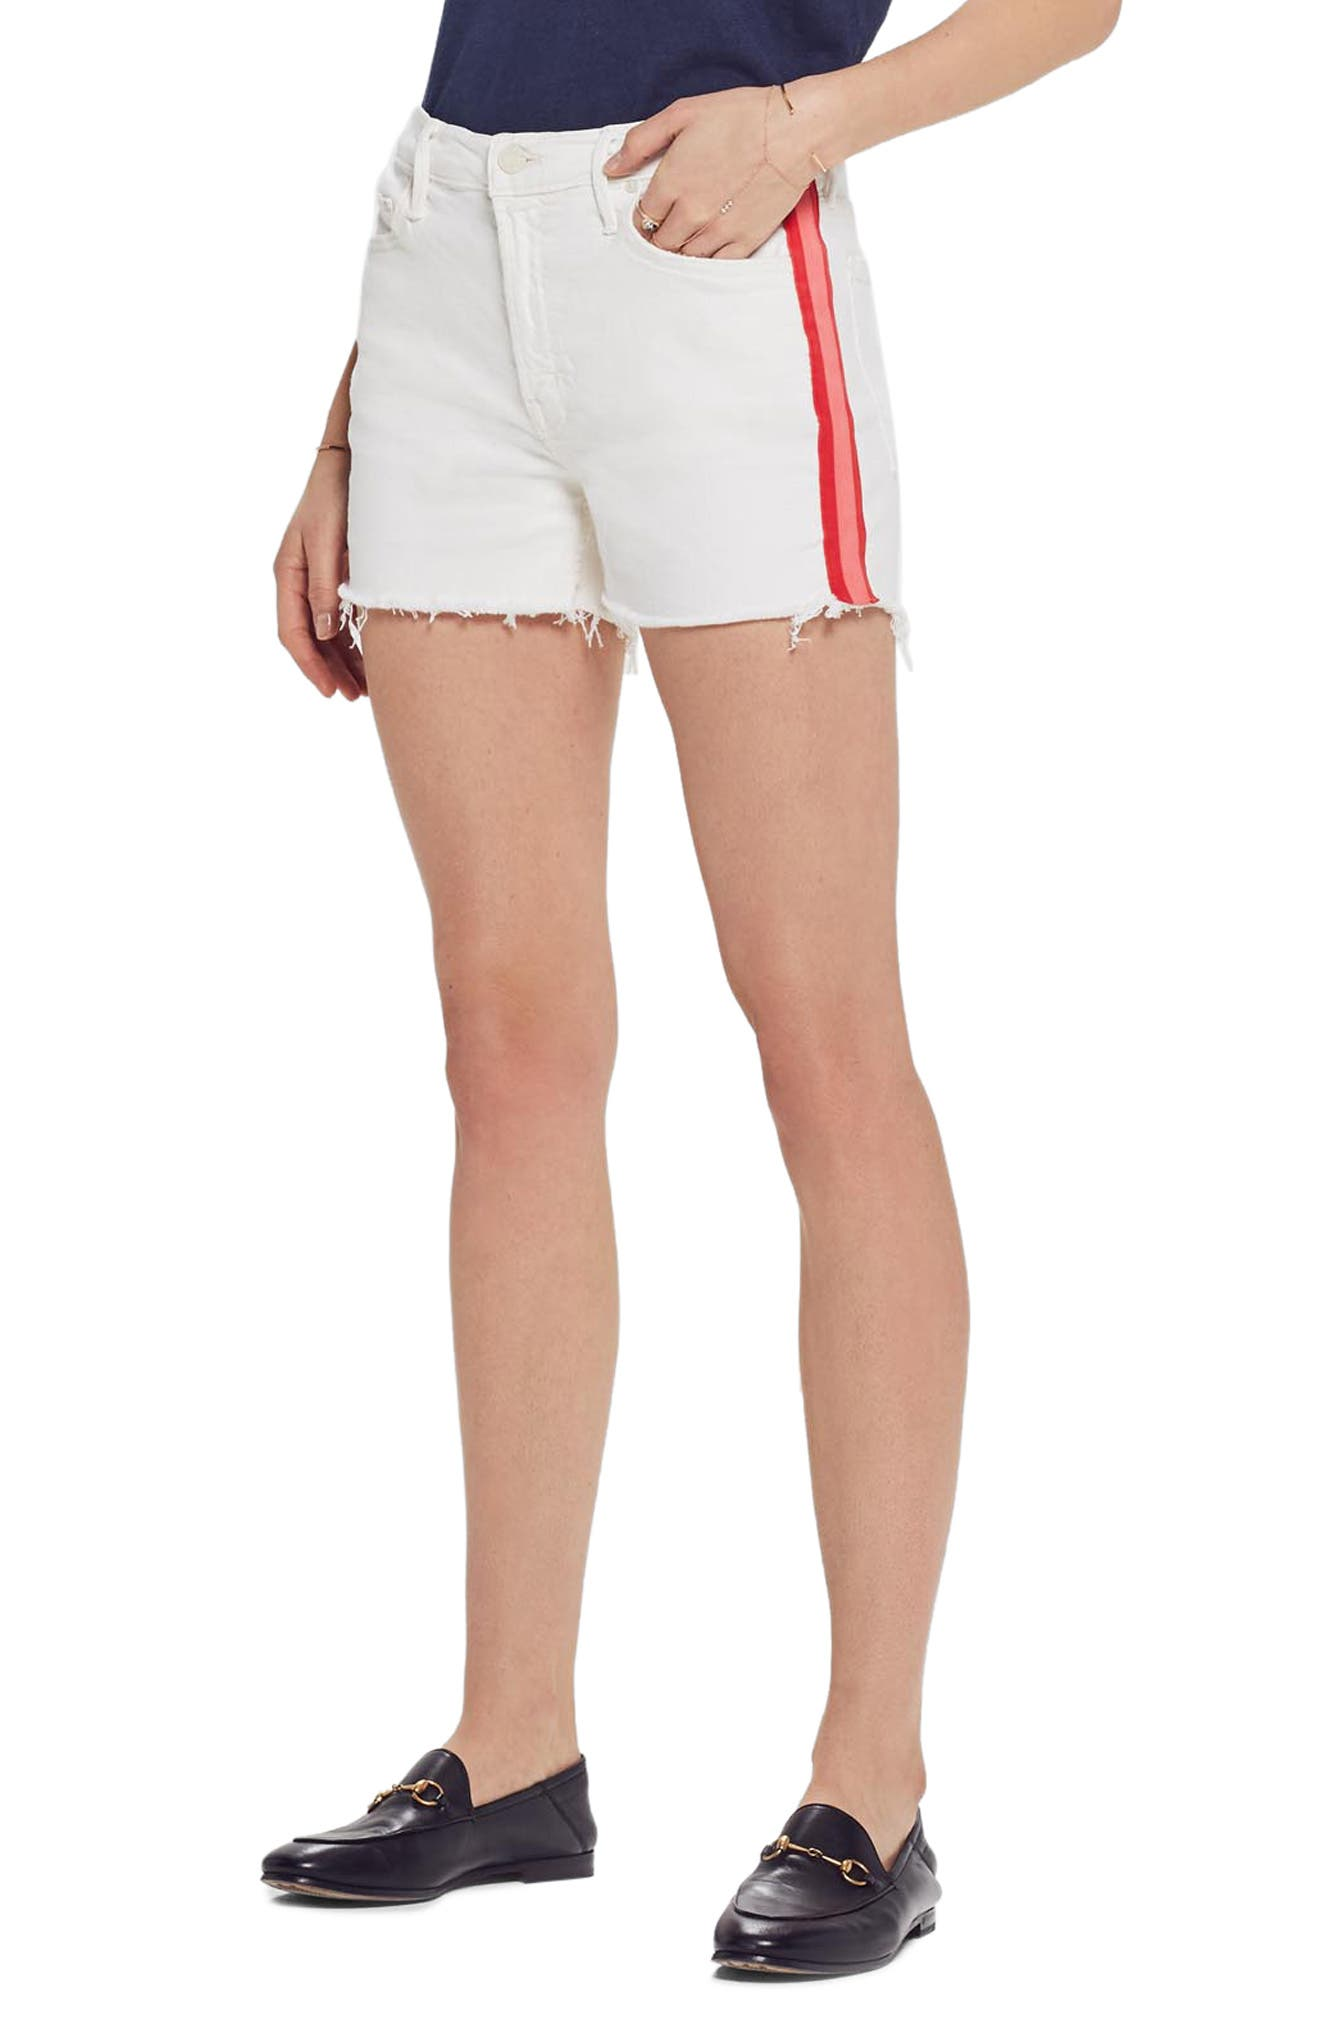 MOTHER The Sinner Frayed Denim Shorts, Main, color, WHIPPING THE CREAM PINK RACER